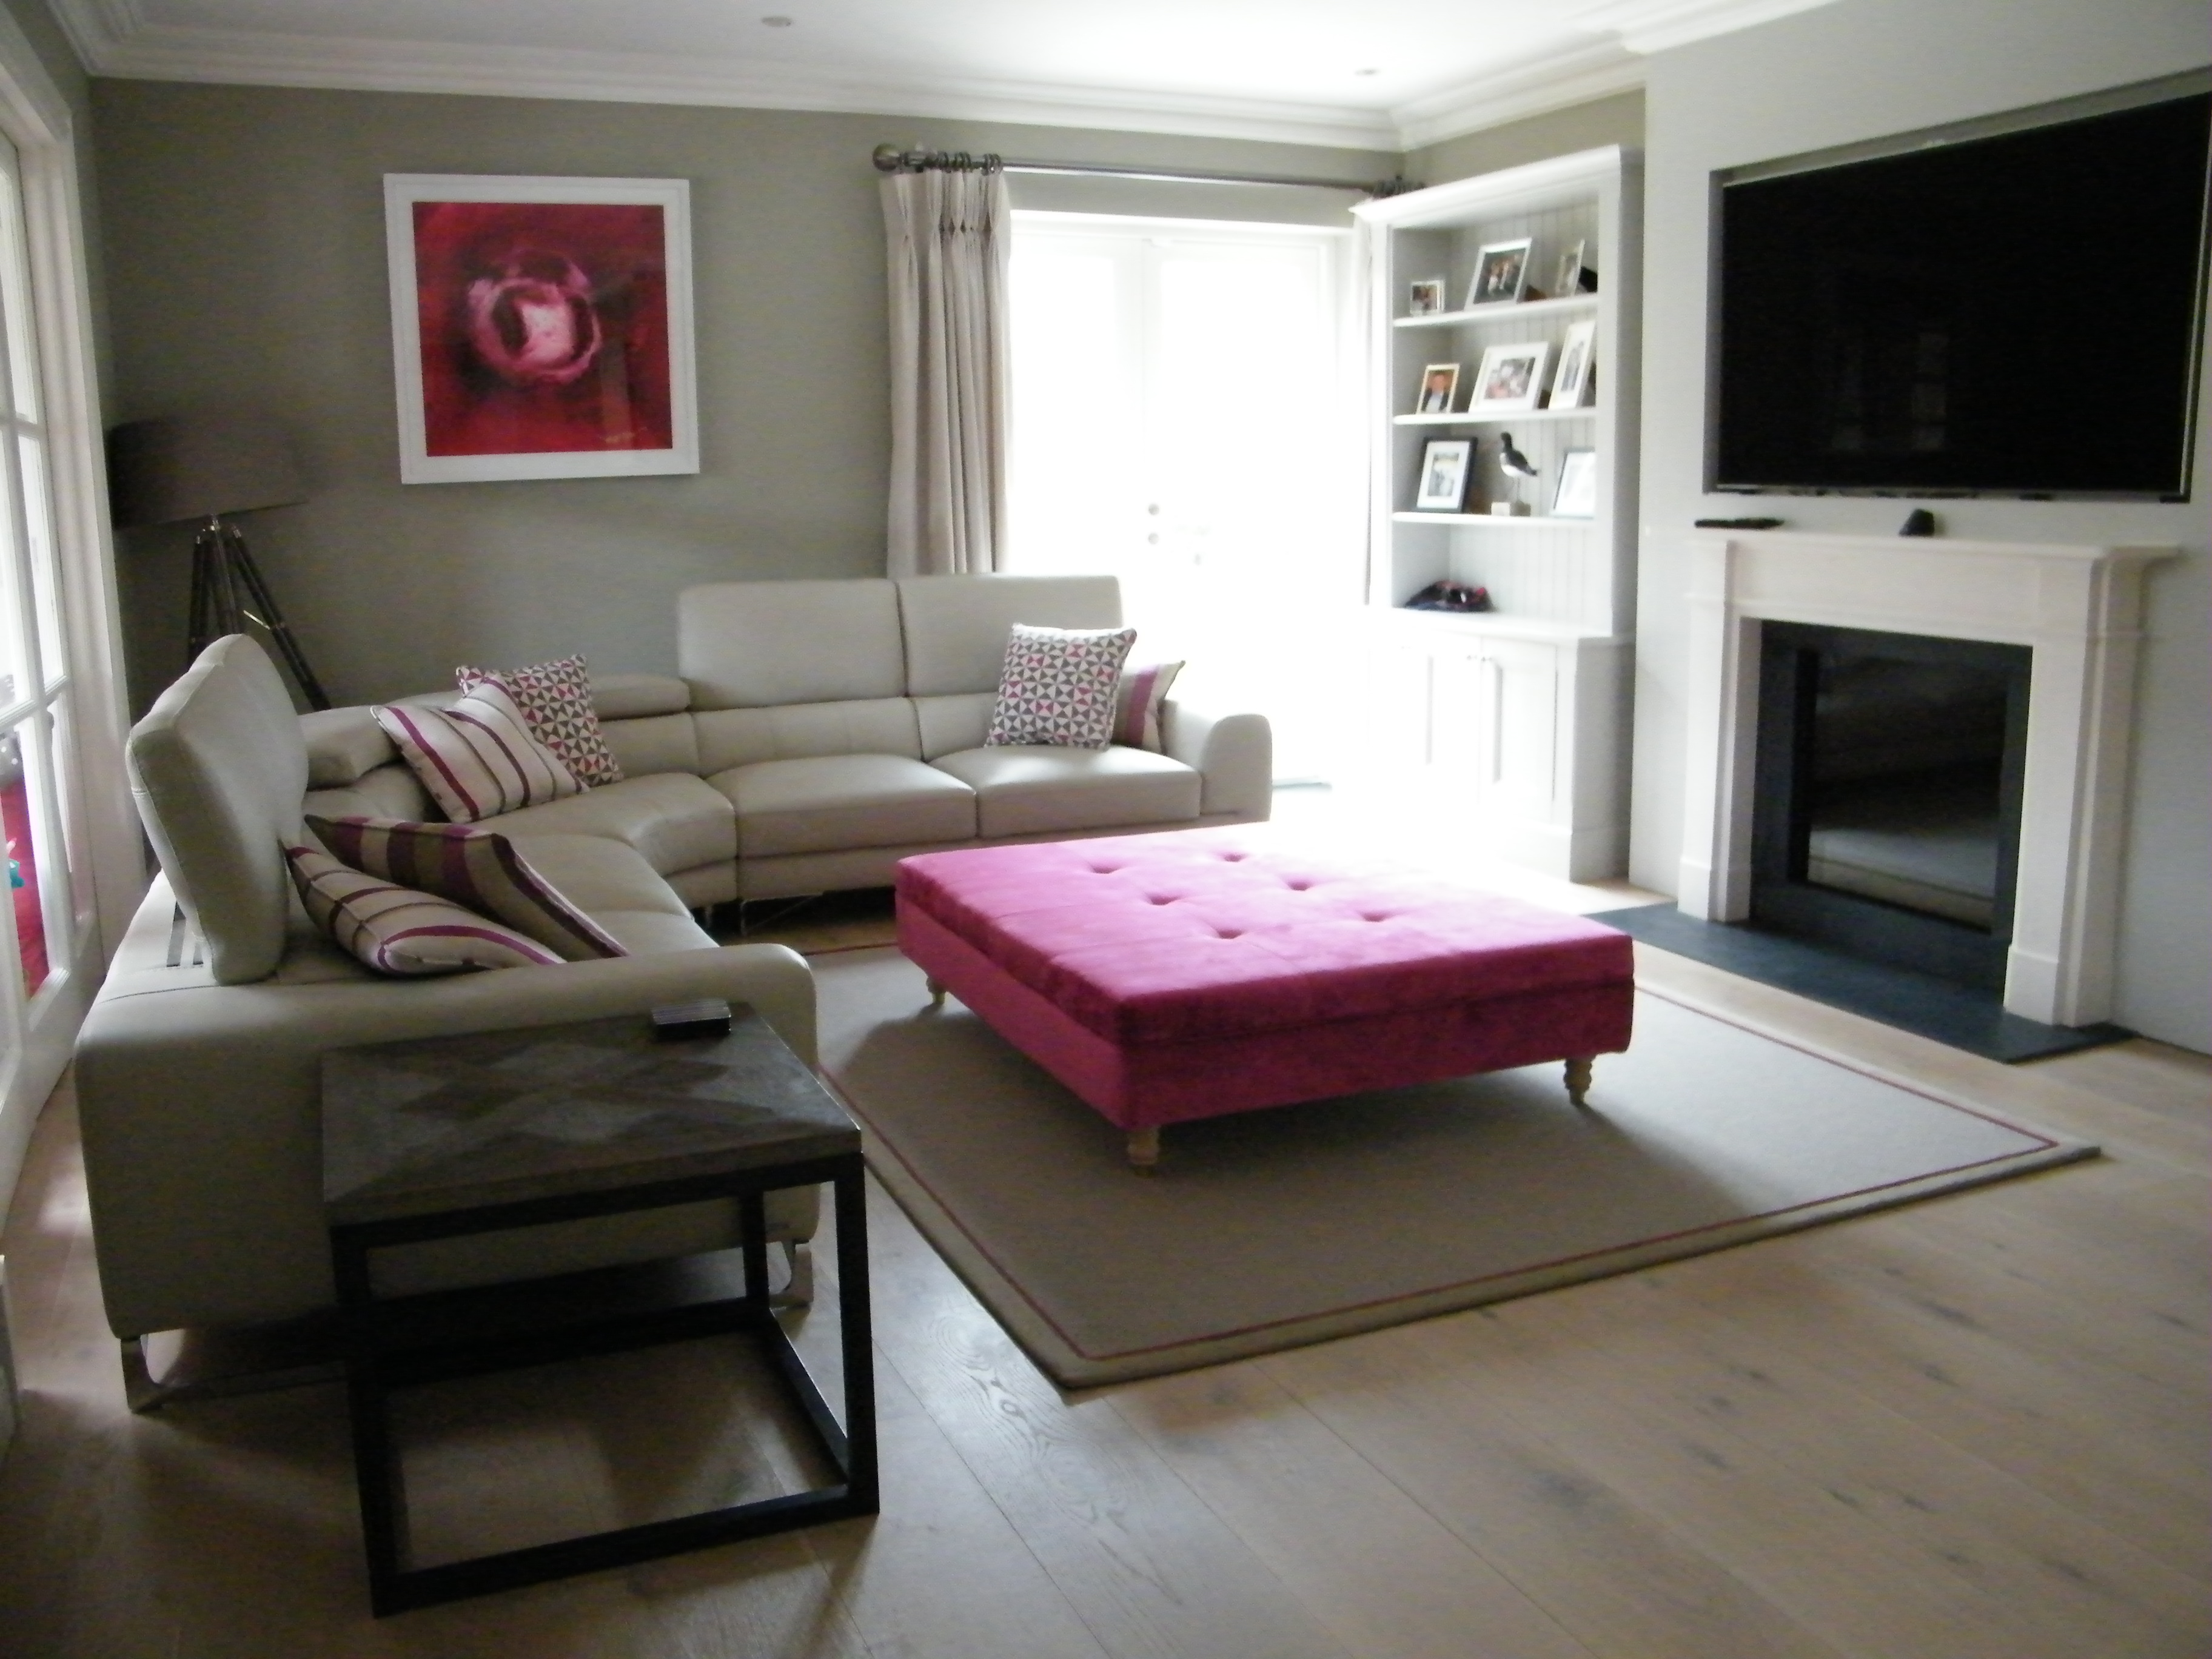 Family Home Monkstown Dublin. Residential · Interior Design Family Room